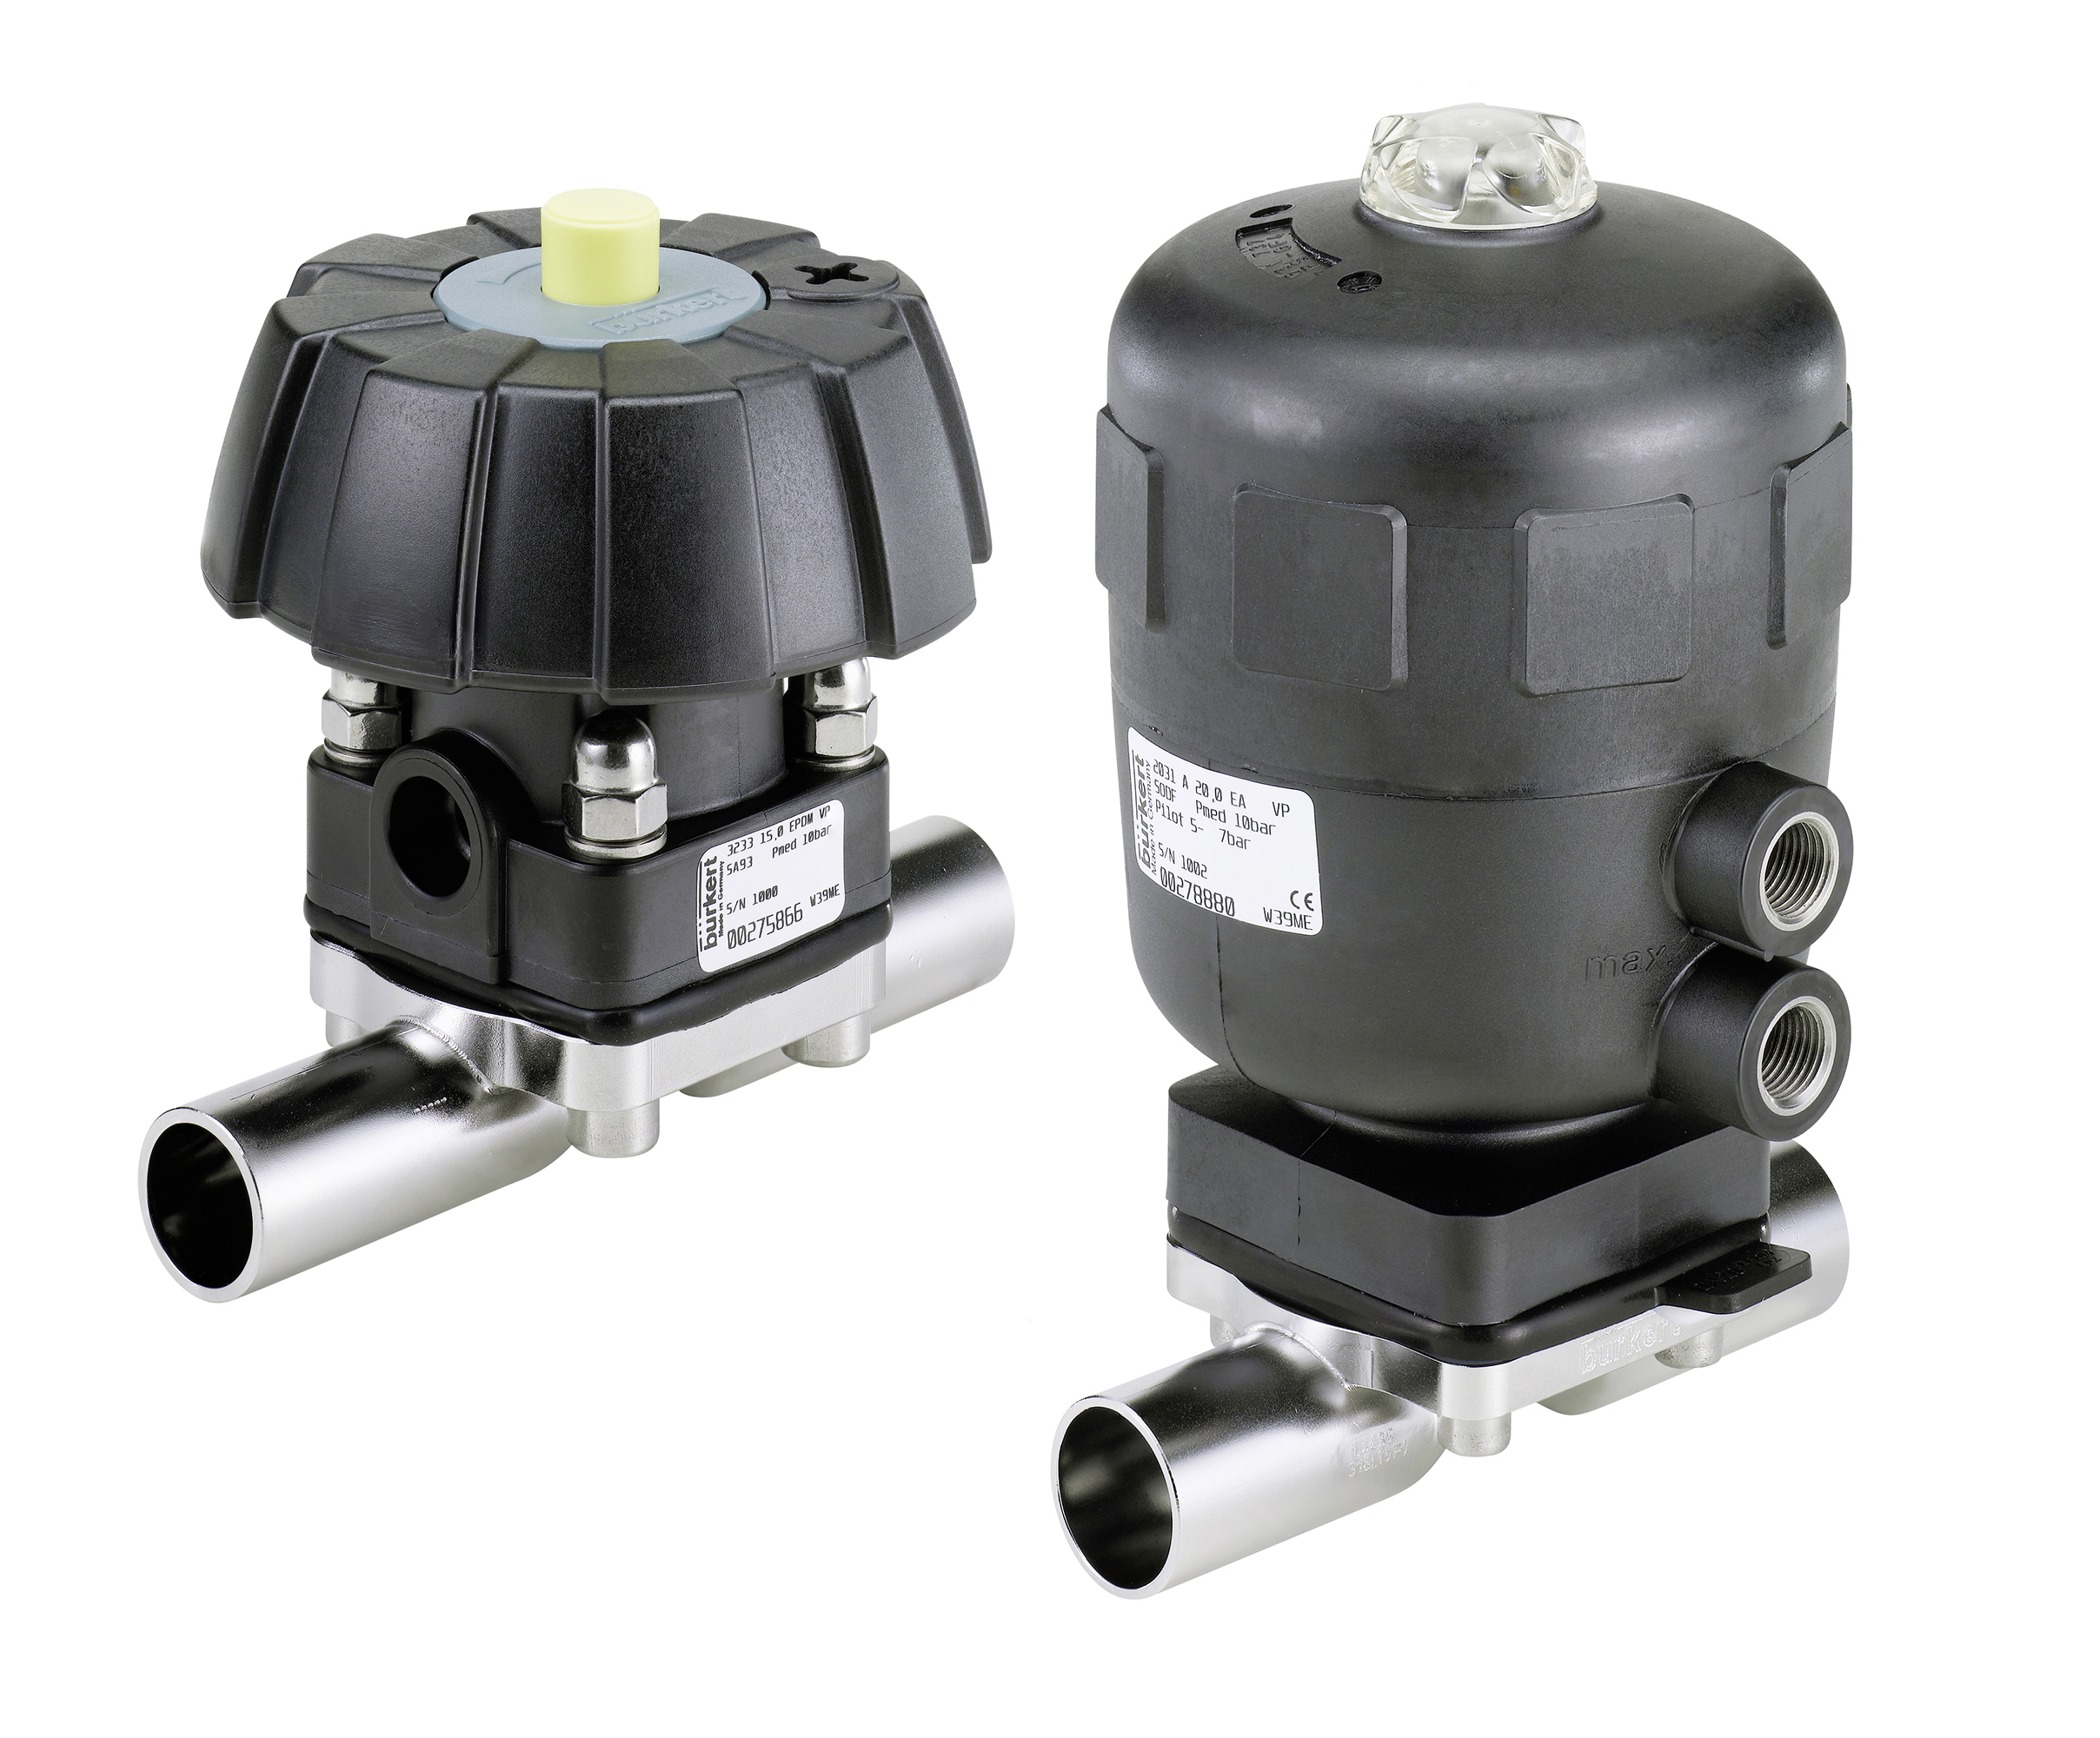 Brkert launches latest hygienic diaphragm valve diaphragm valve ccuart Image collections